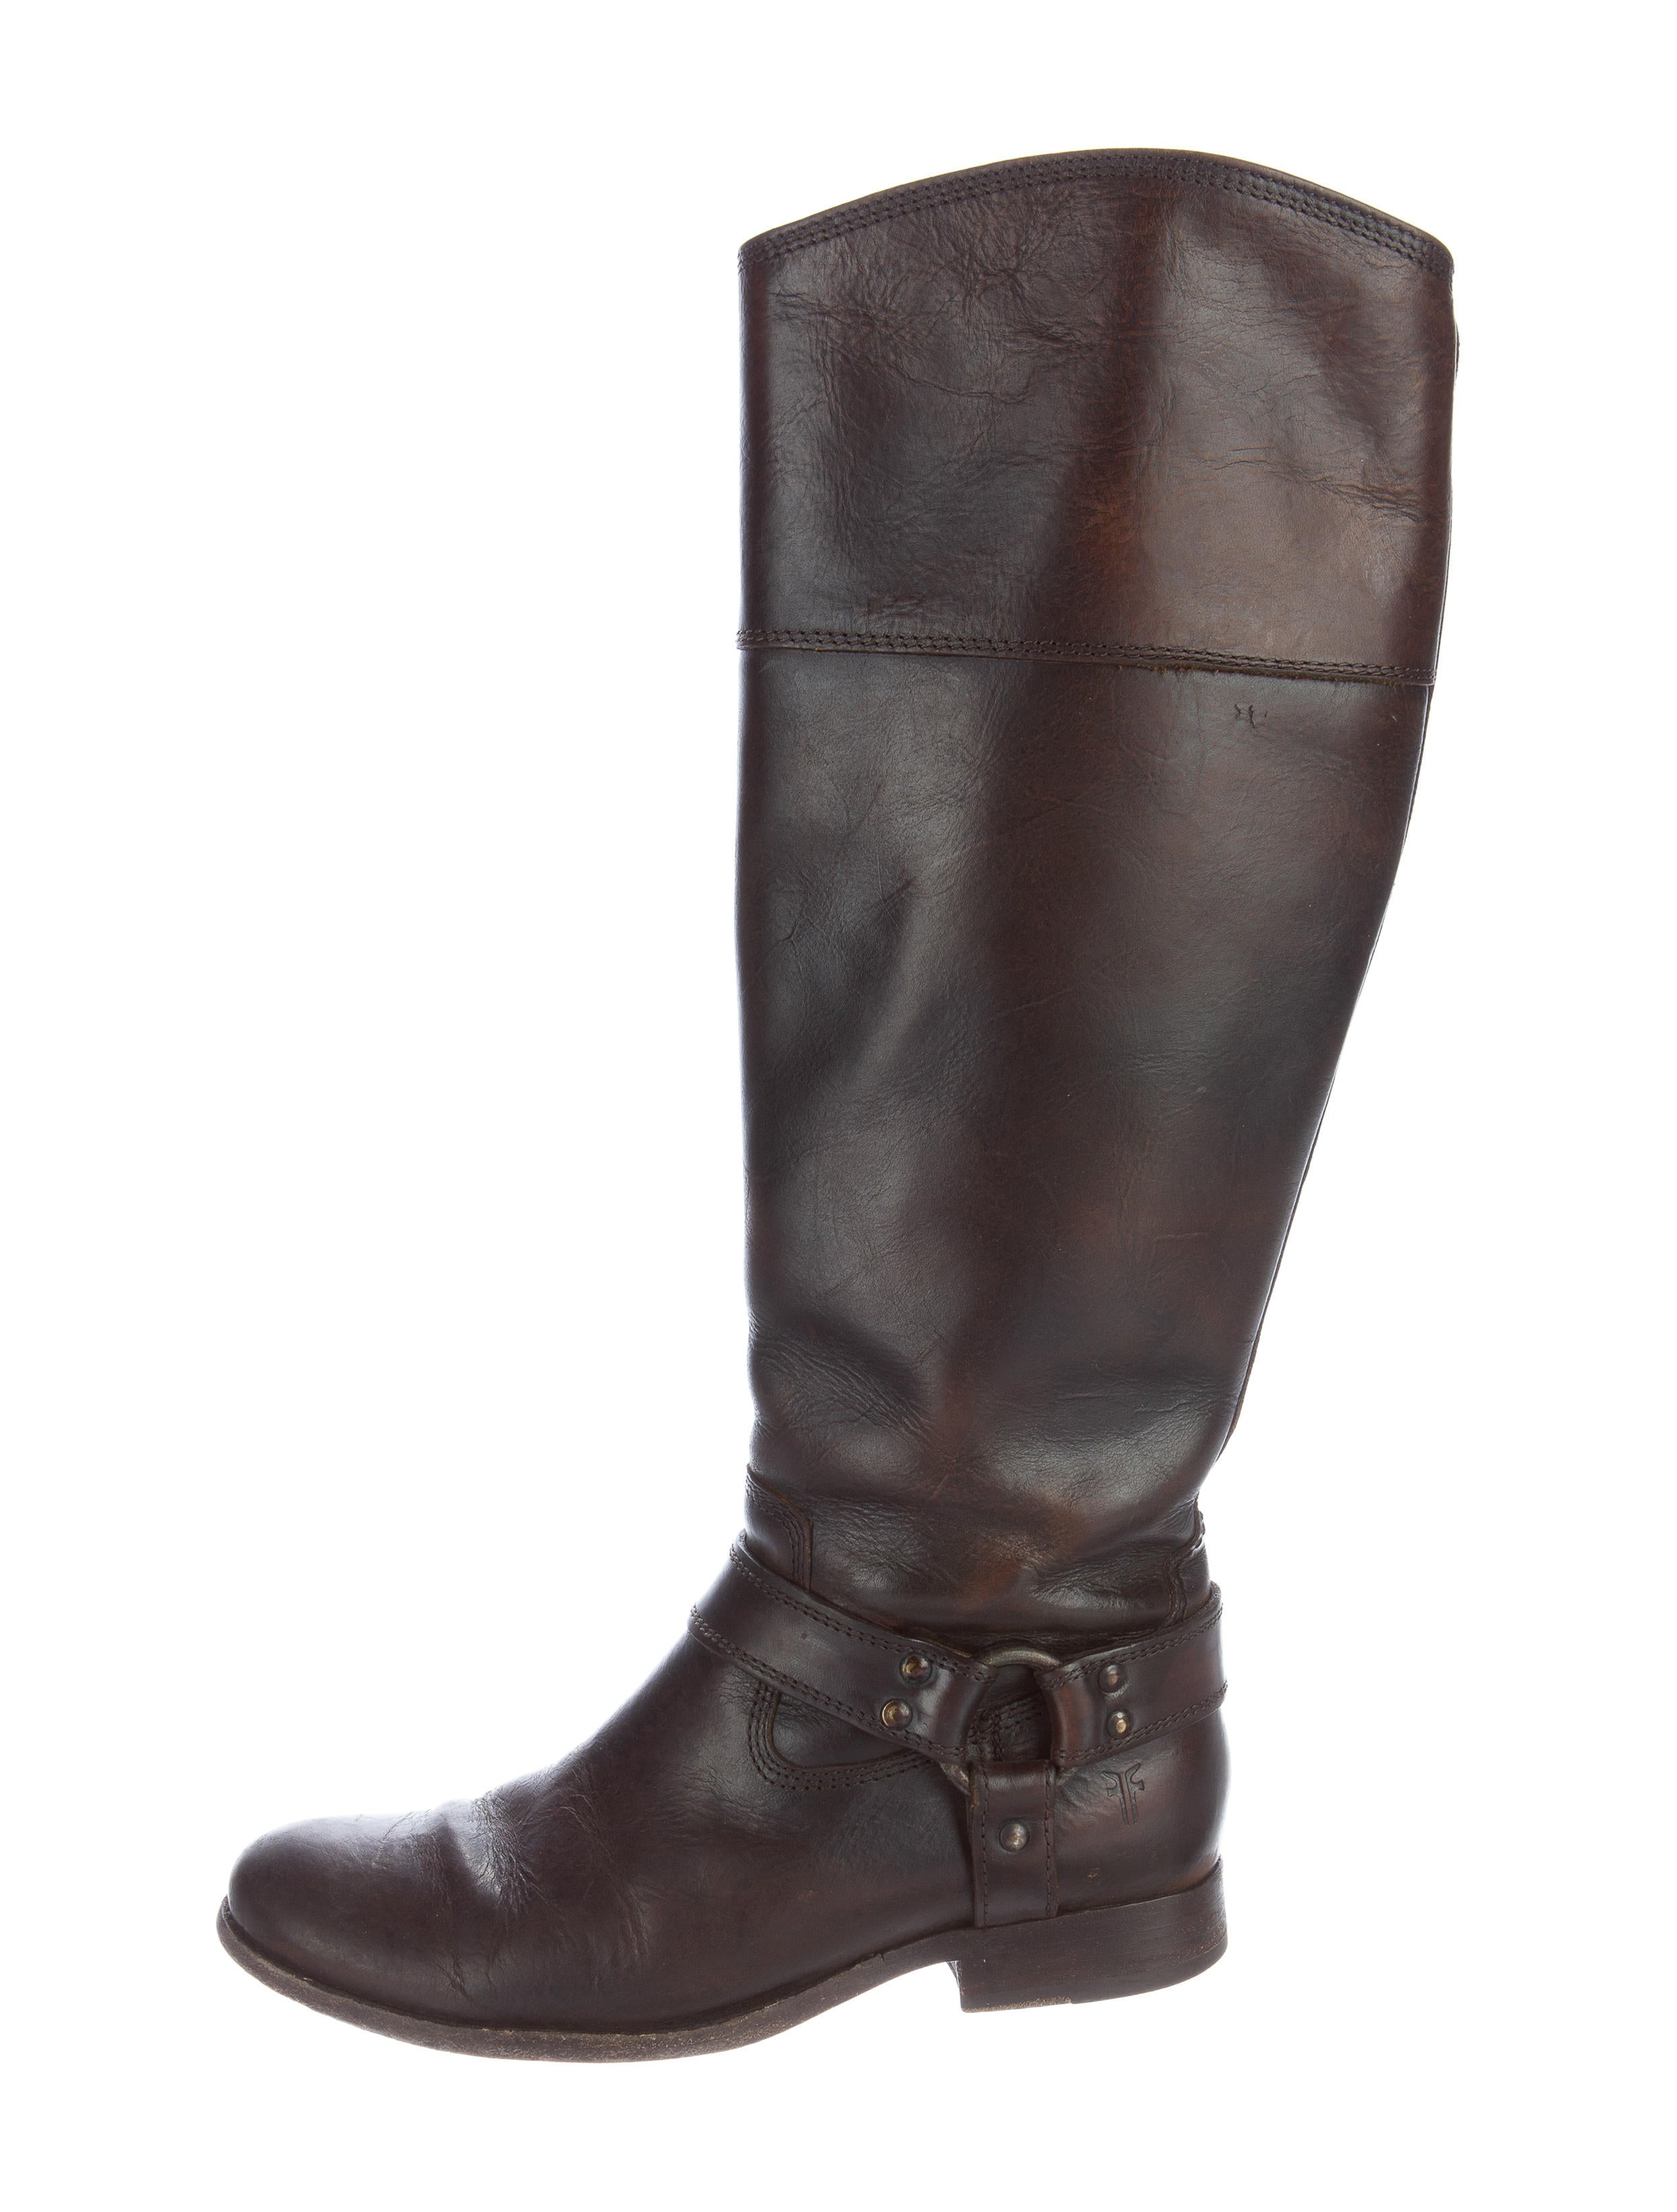 frye leather knee high boots shoes wf821031 the realreal